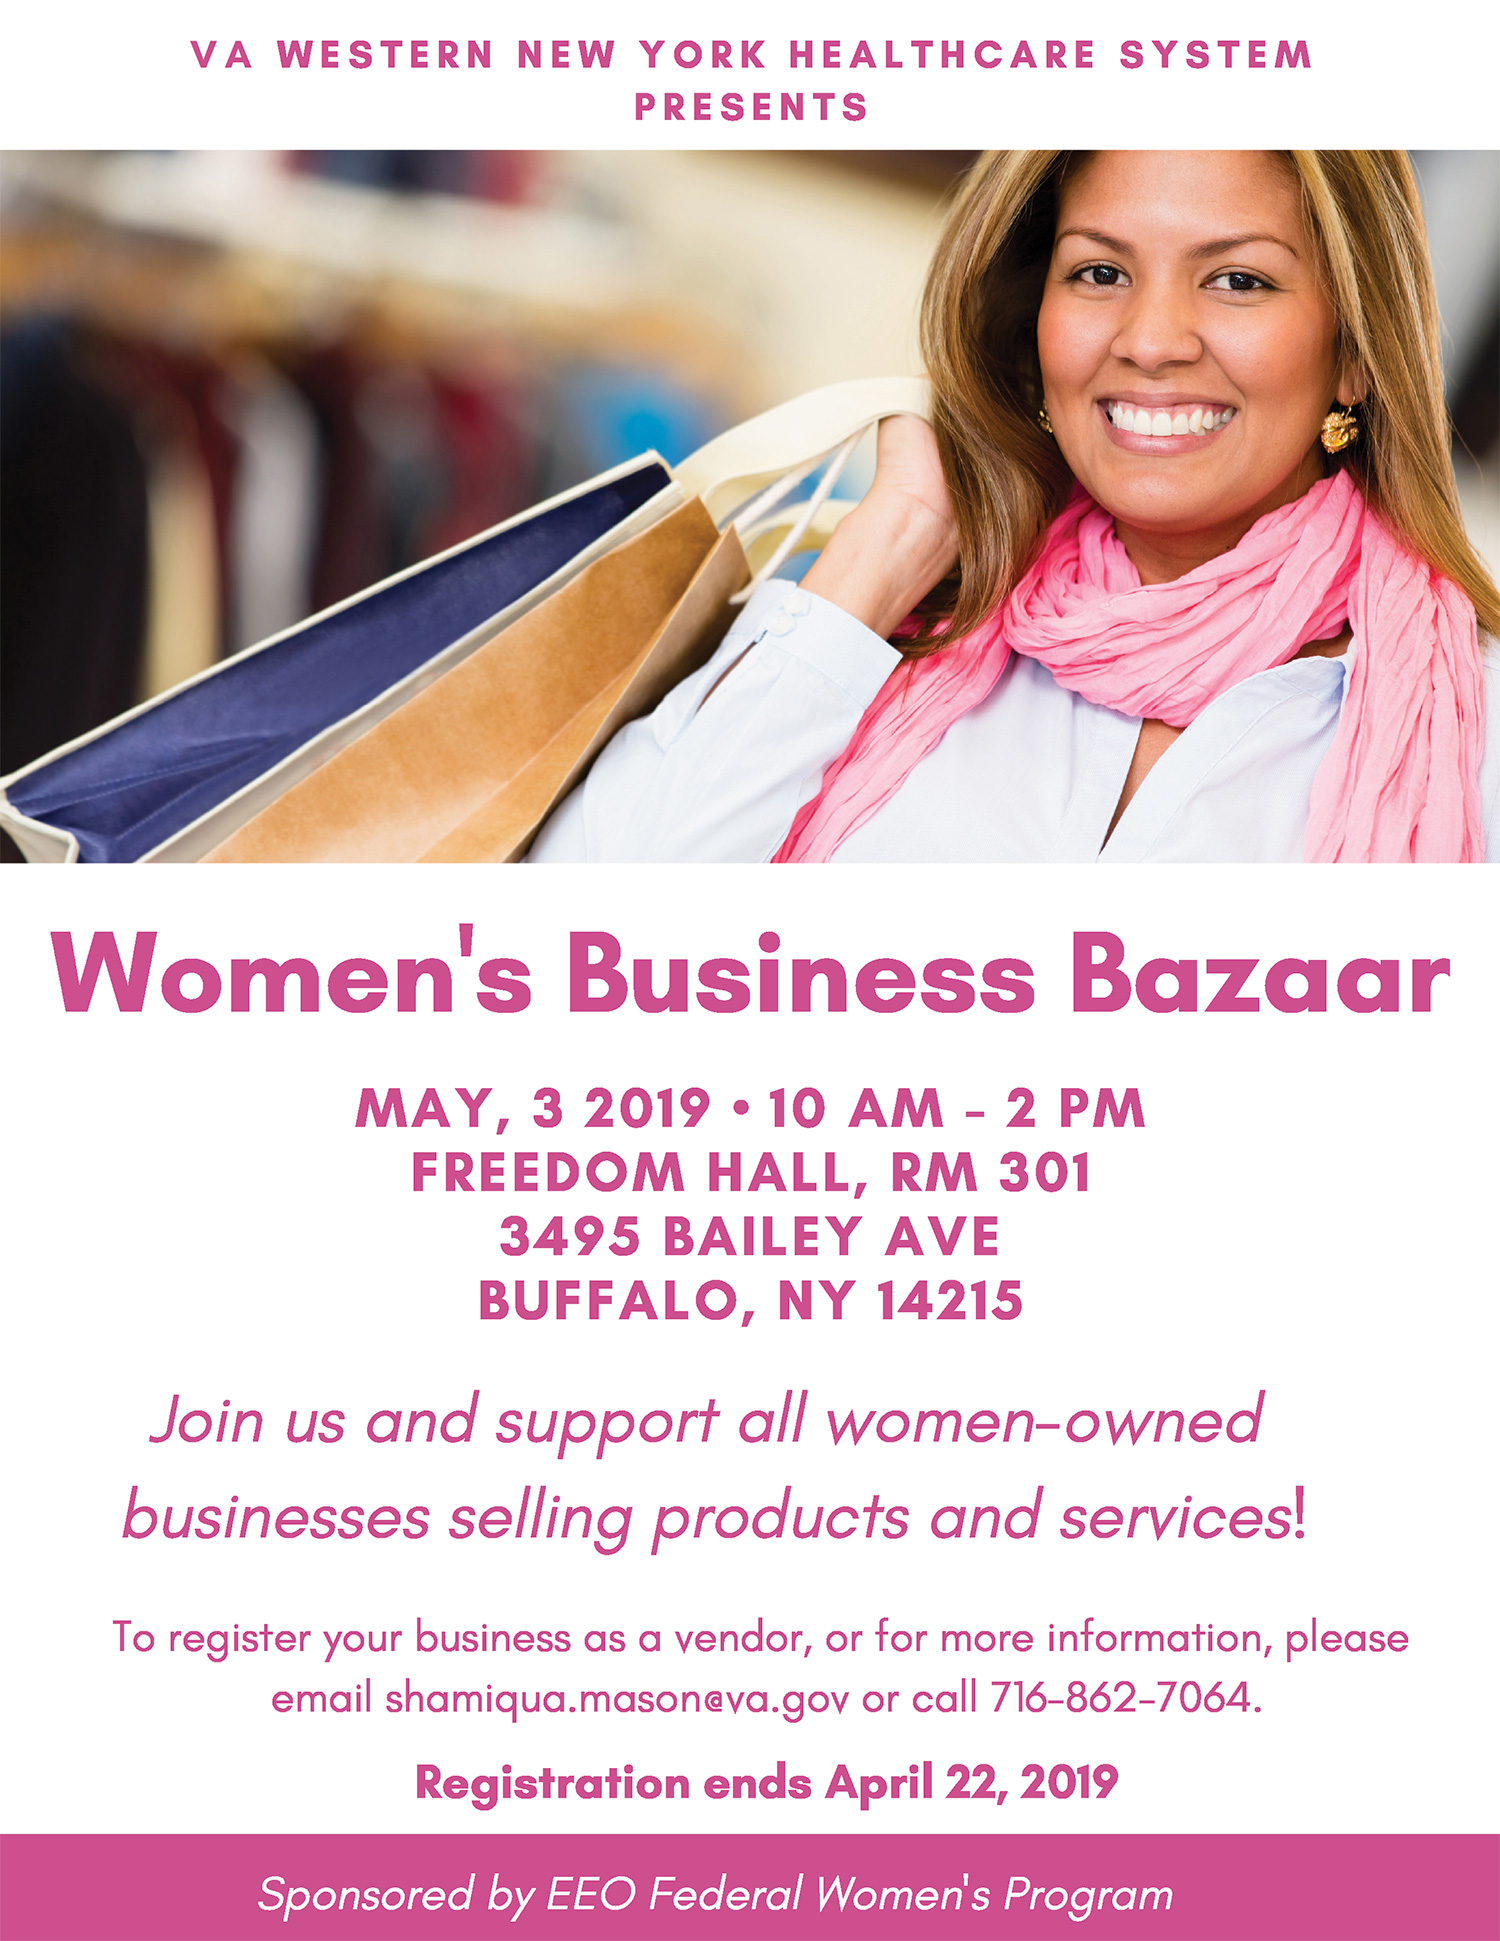 Women's Business Bazaar